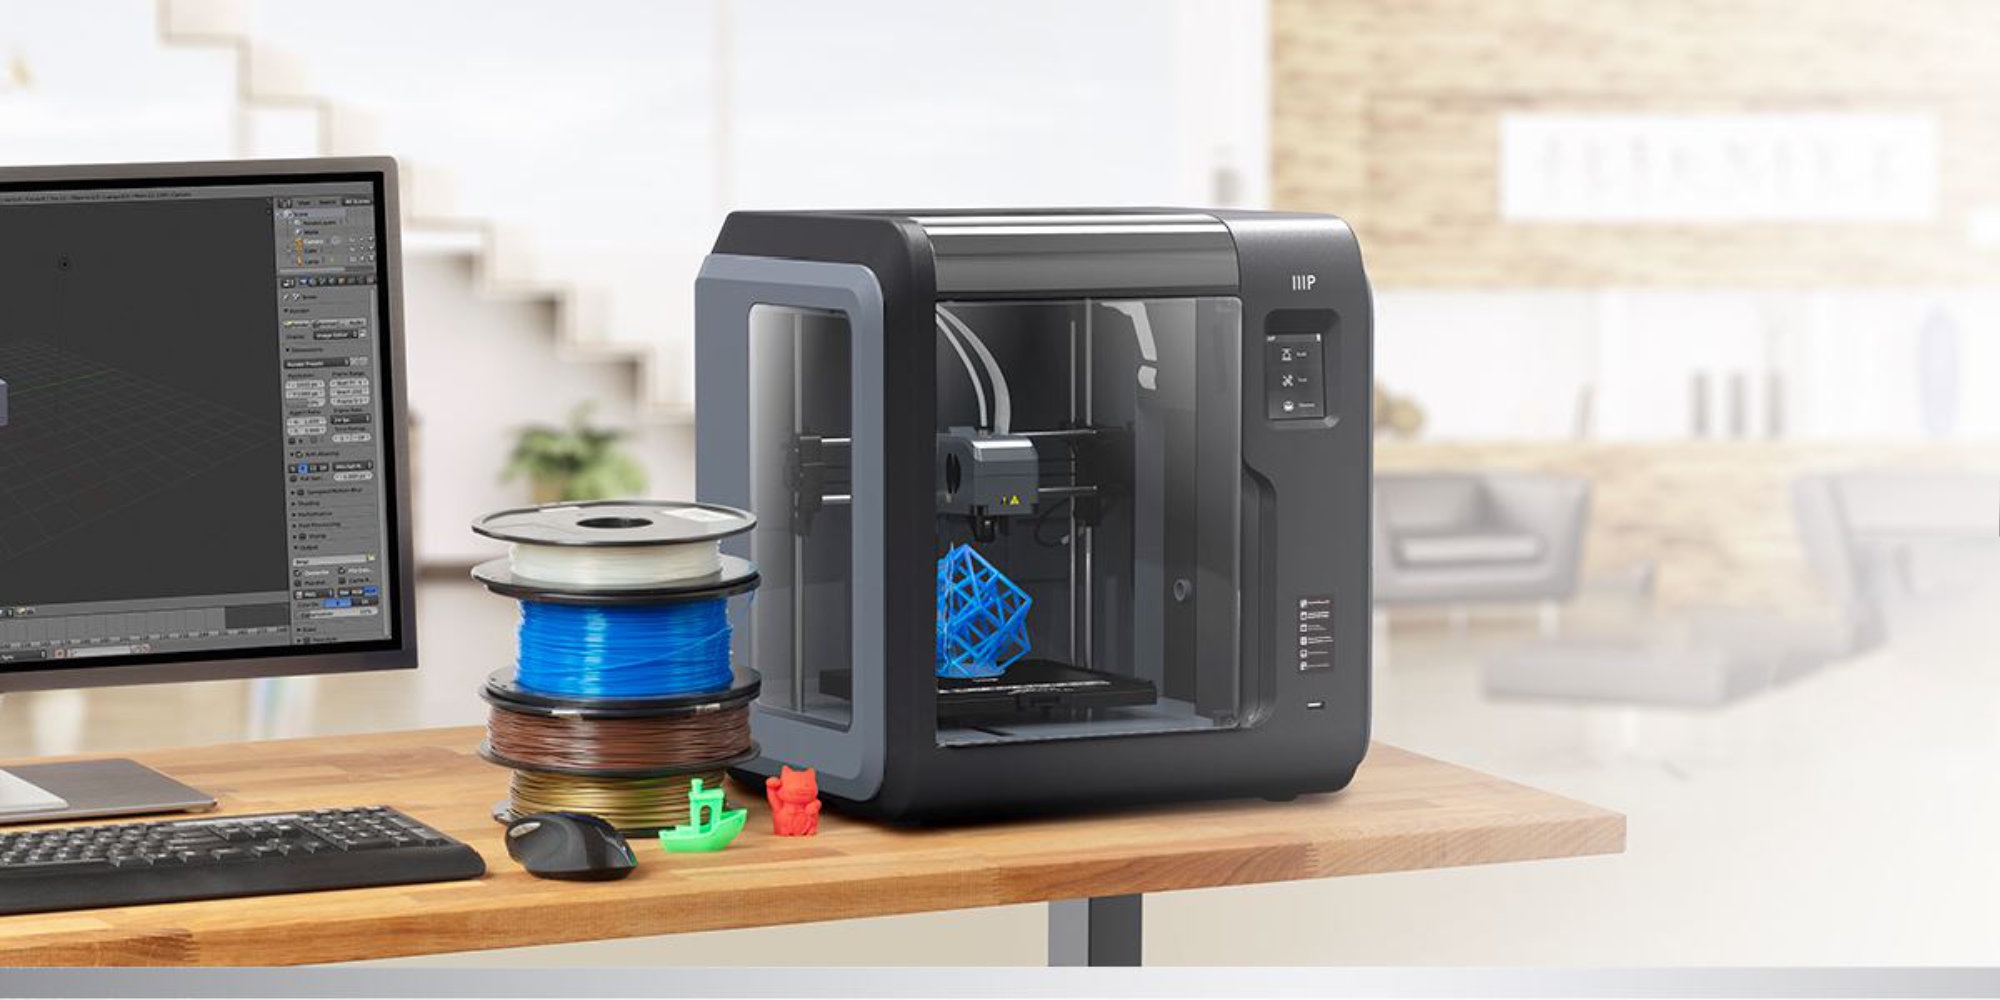 Start 3D printing w/ Monoprice's recently-released Voxel for a low of $274.50 (Reg. $400)